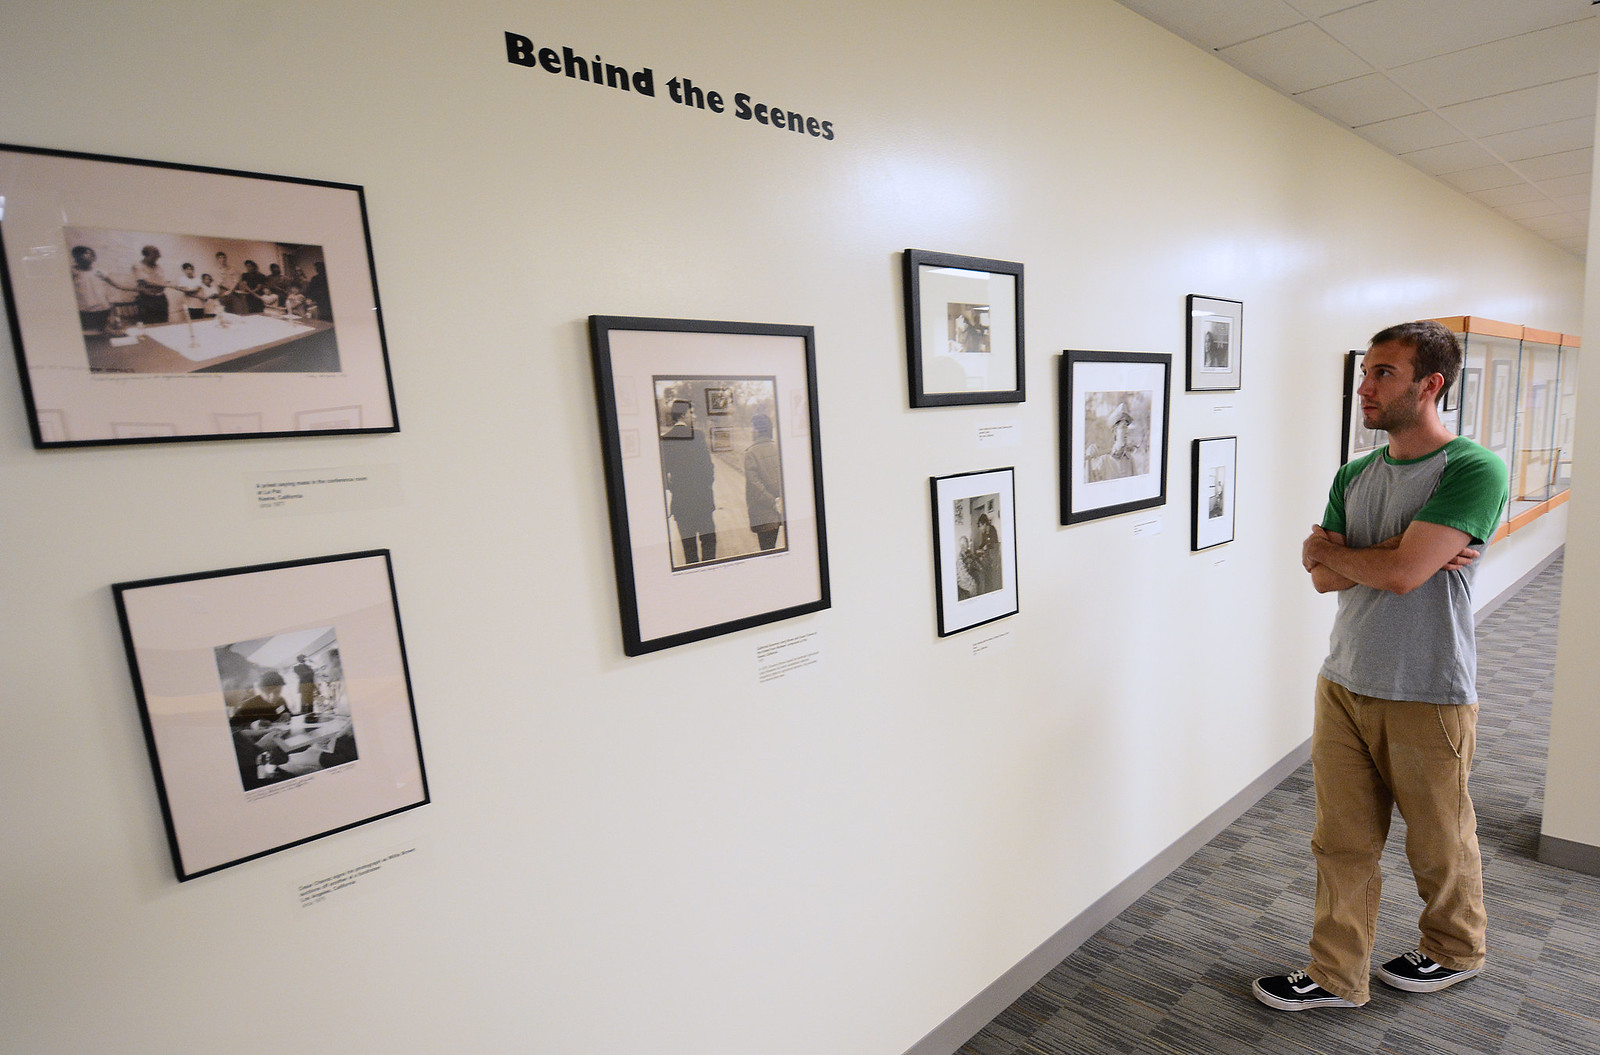 Andrew Dercole, senior, observes photographs in the Marching Through History with Cesar Chavez and the Farm Workers exhibit at J. Paul Leonard Library on Monday, Sept. 16, 2013. Photo By Philip Houston / Xpress